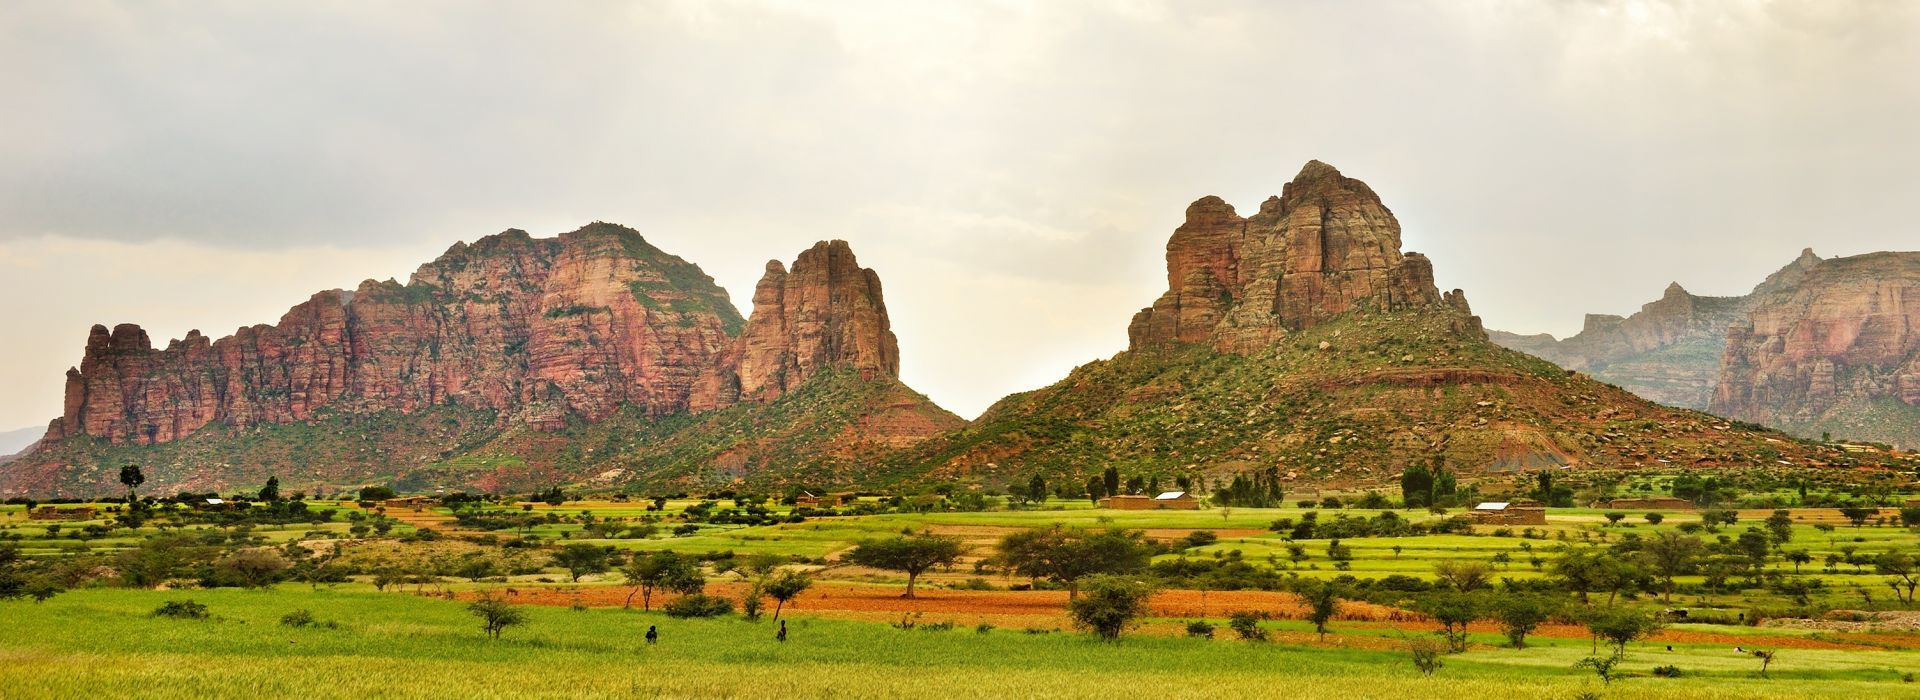 Cultural, religious and historic sites Tours in Ethiopia